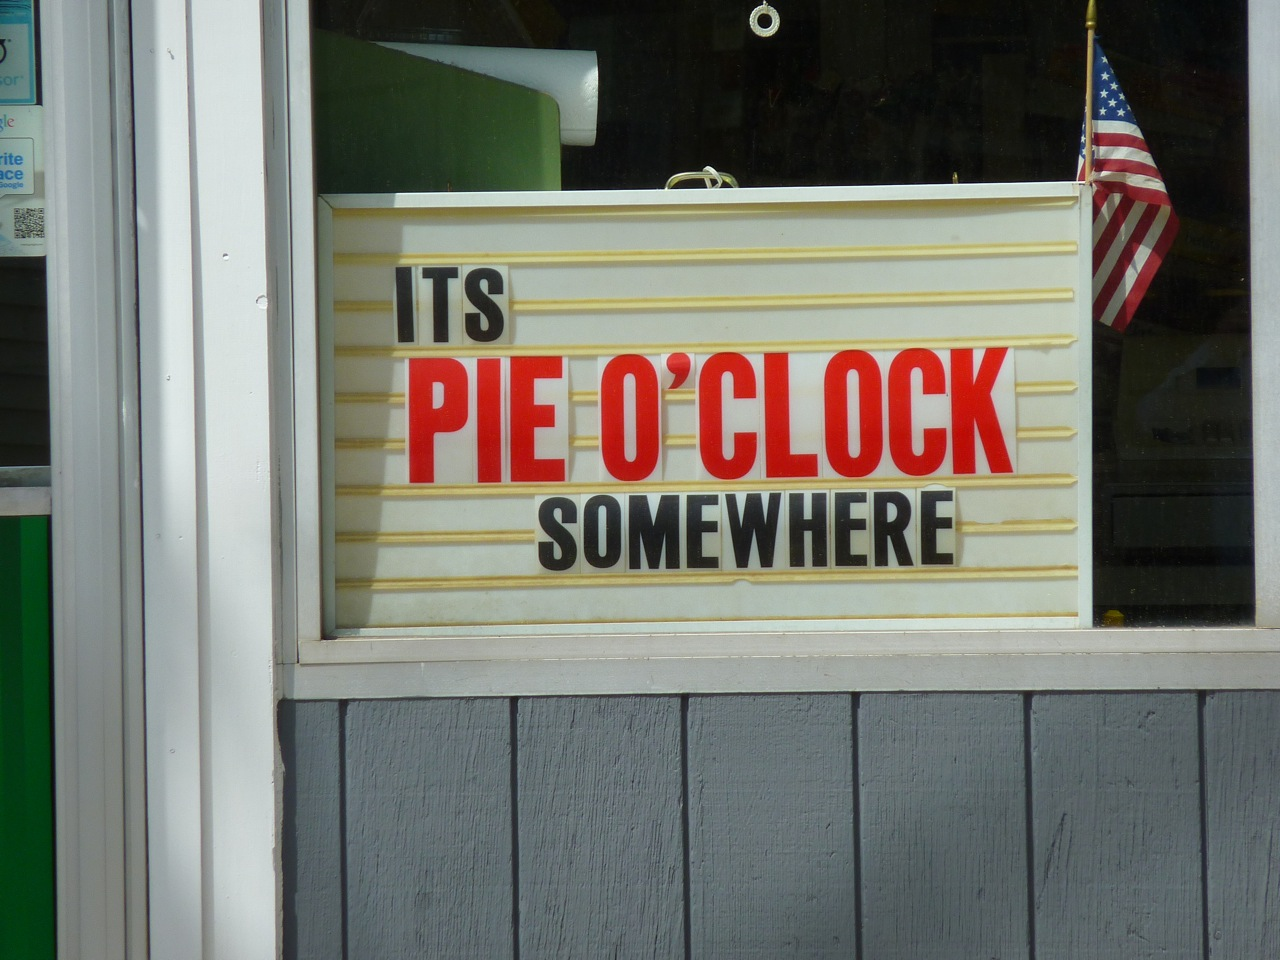 It's pie o'clock somewhere sign at Thwaites Market in Methuen, Mass.